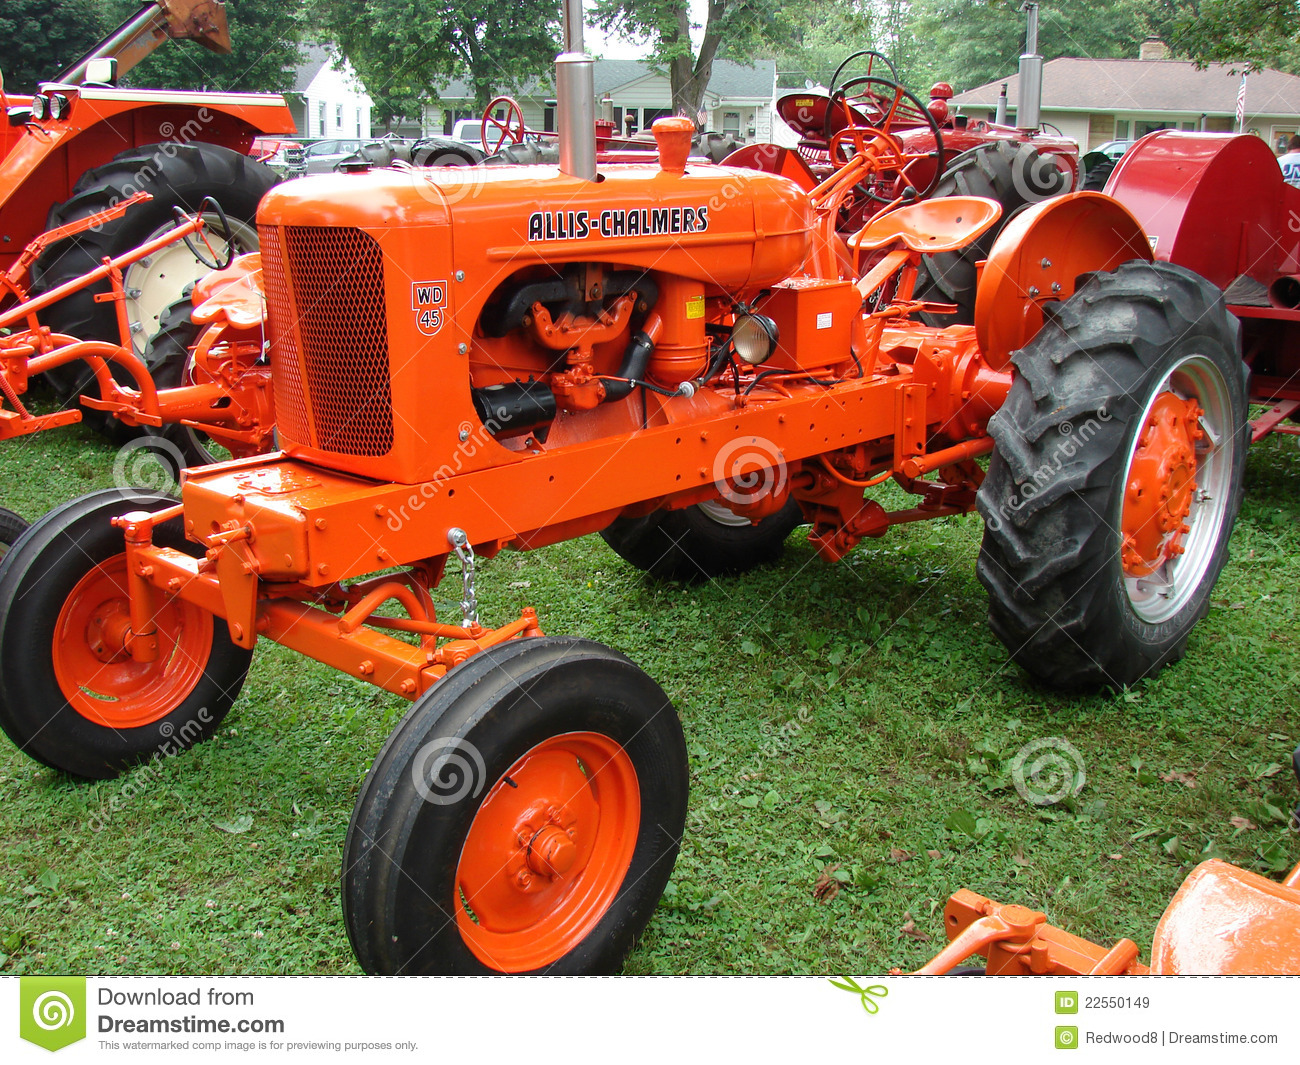 Wd 45 Allis Chalmers Tractor Download Preview